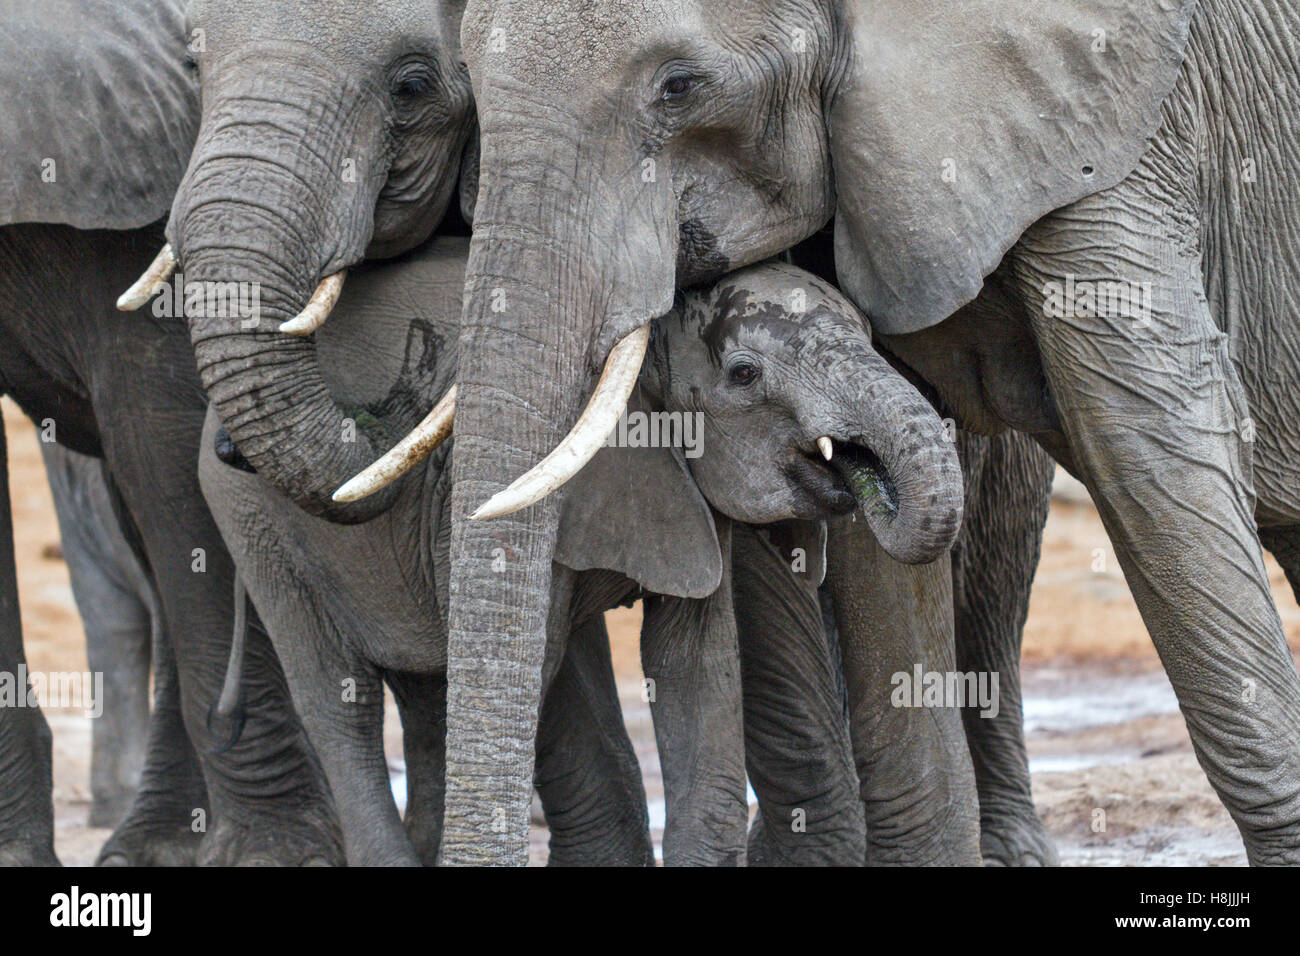 Part of a series of images documenting the complex social interactions of the African elephant when they gather - Stock Image